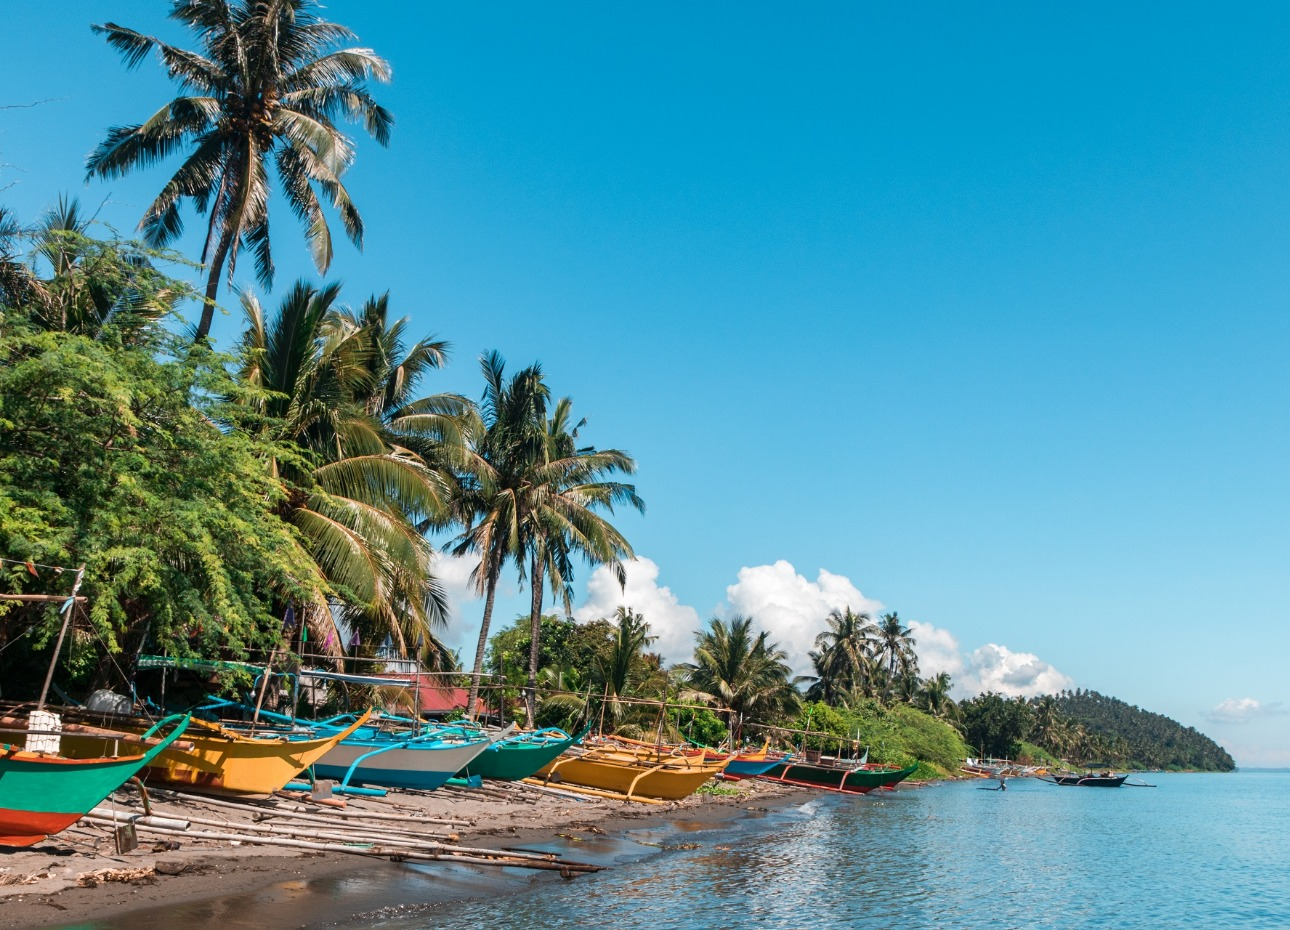 Philippines, Resort, Boats on the beach, image,